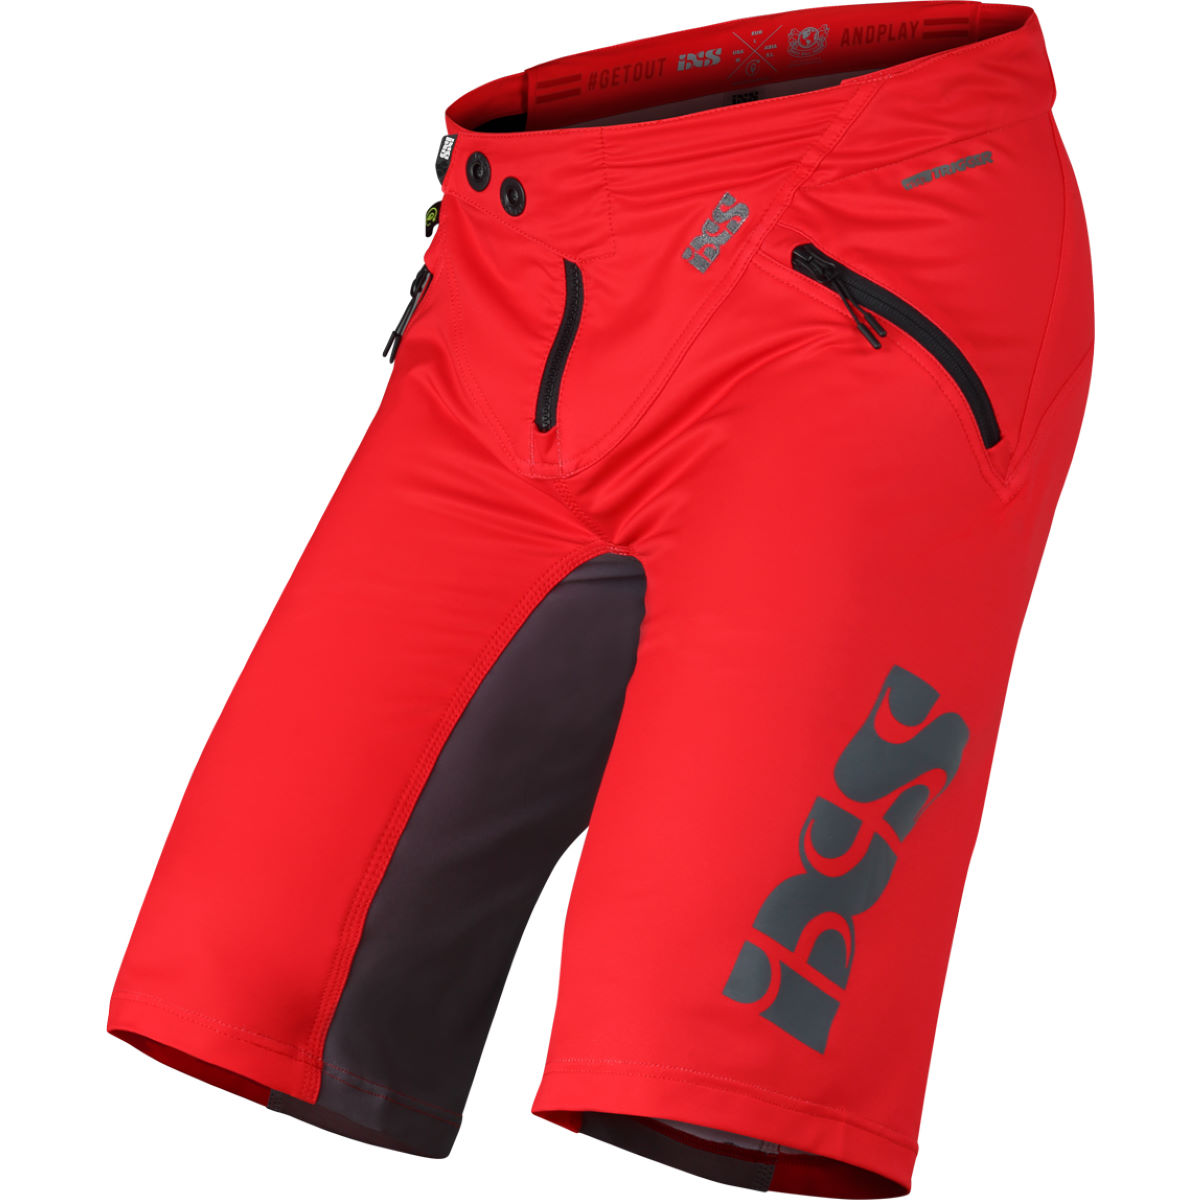 Ixs Trigger Shorts - L Red-graphite  Baggy Shorts